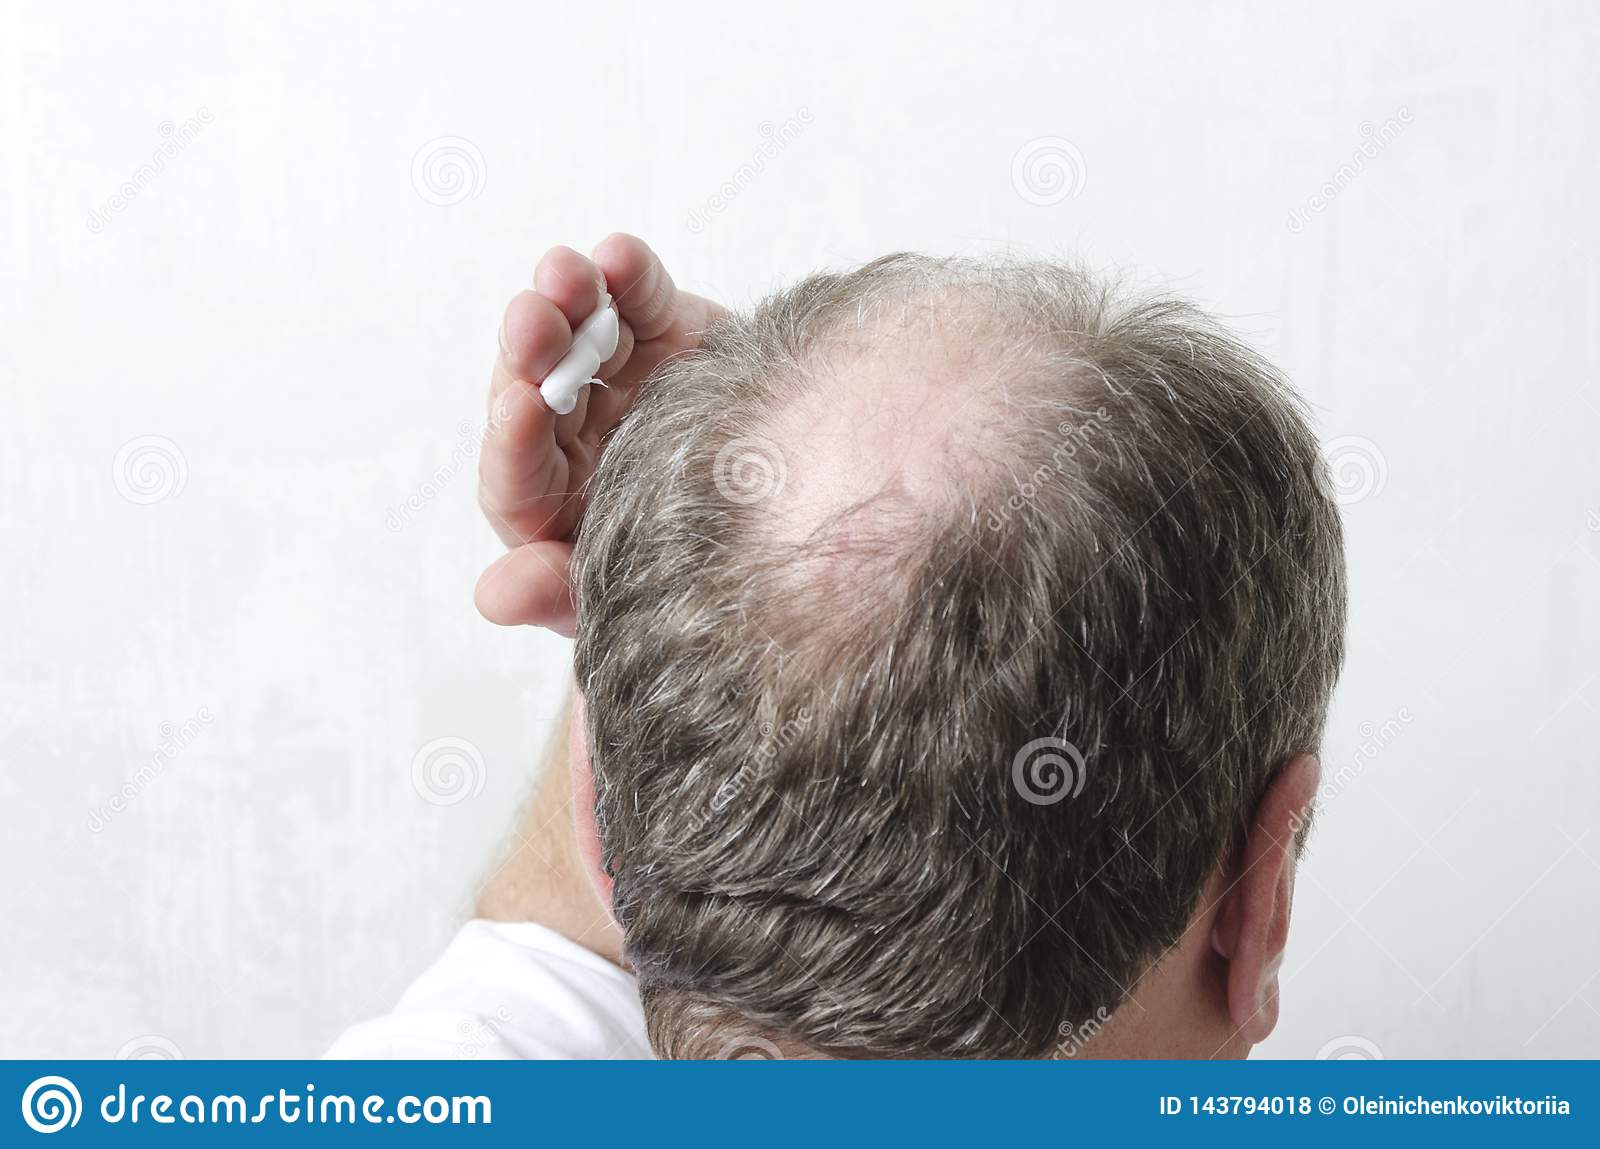 Man applying special cream for hair growth.Concept of beauty procedure for hair care